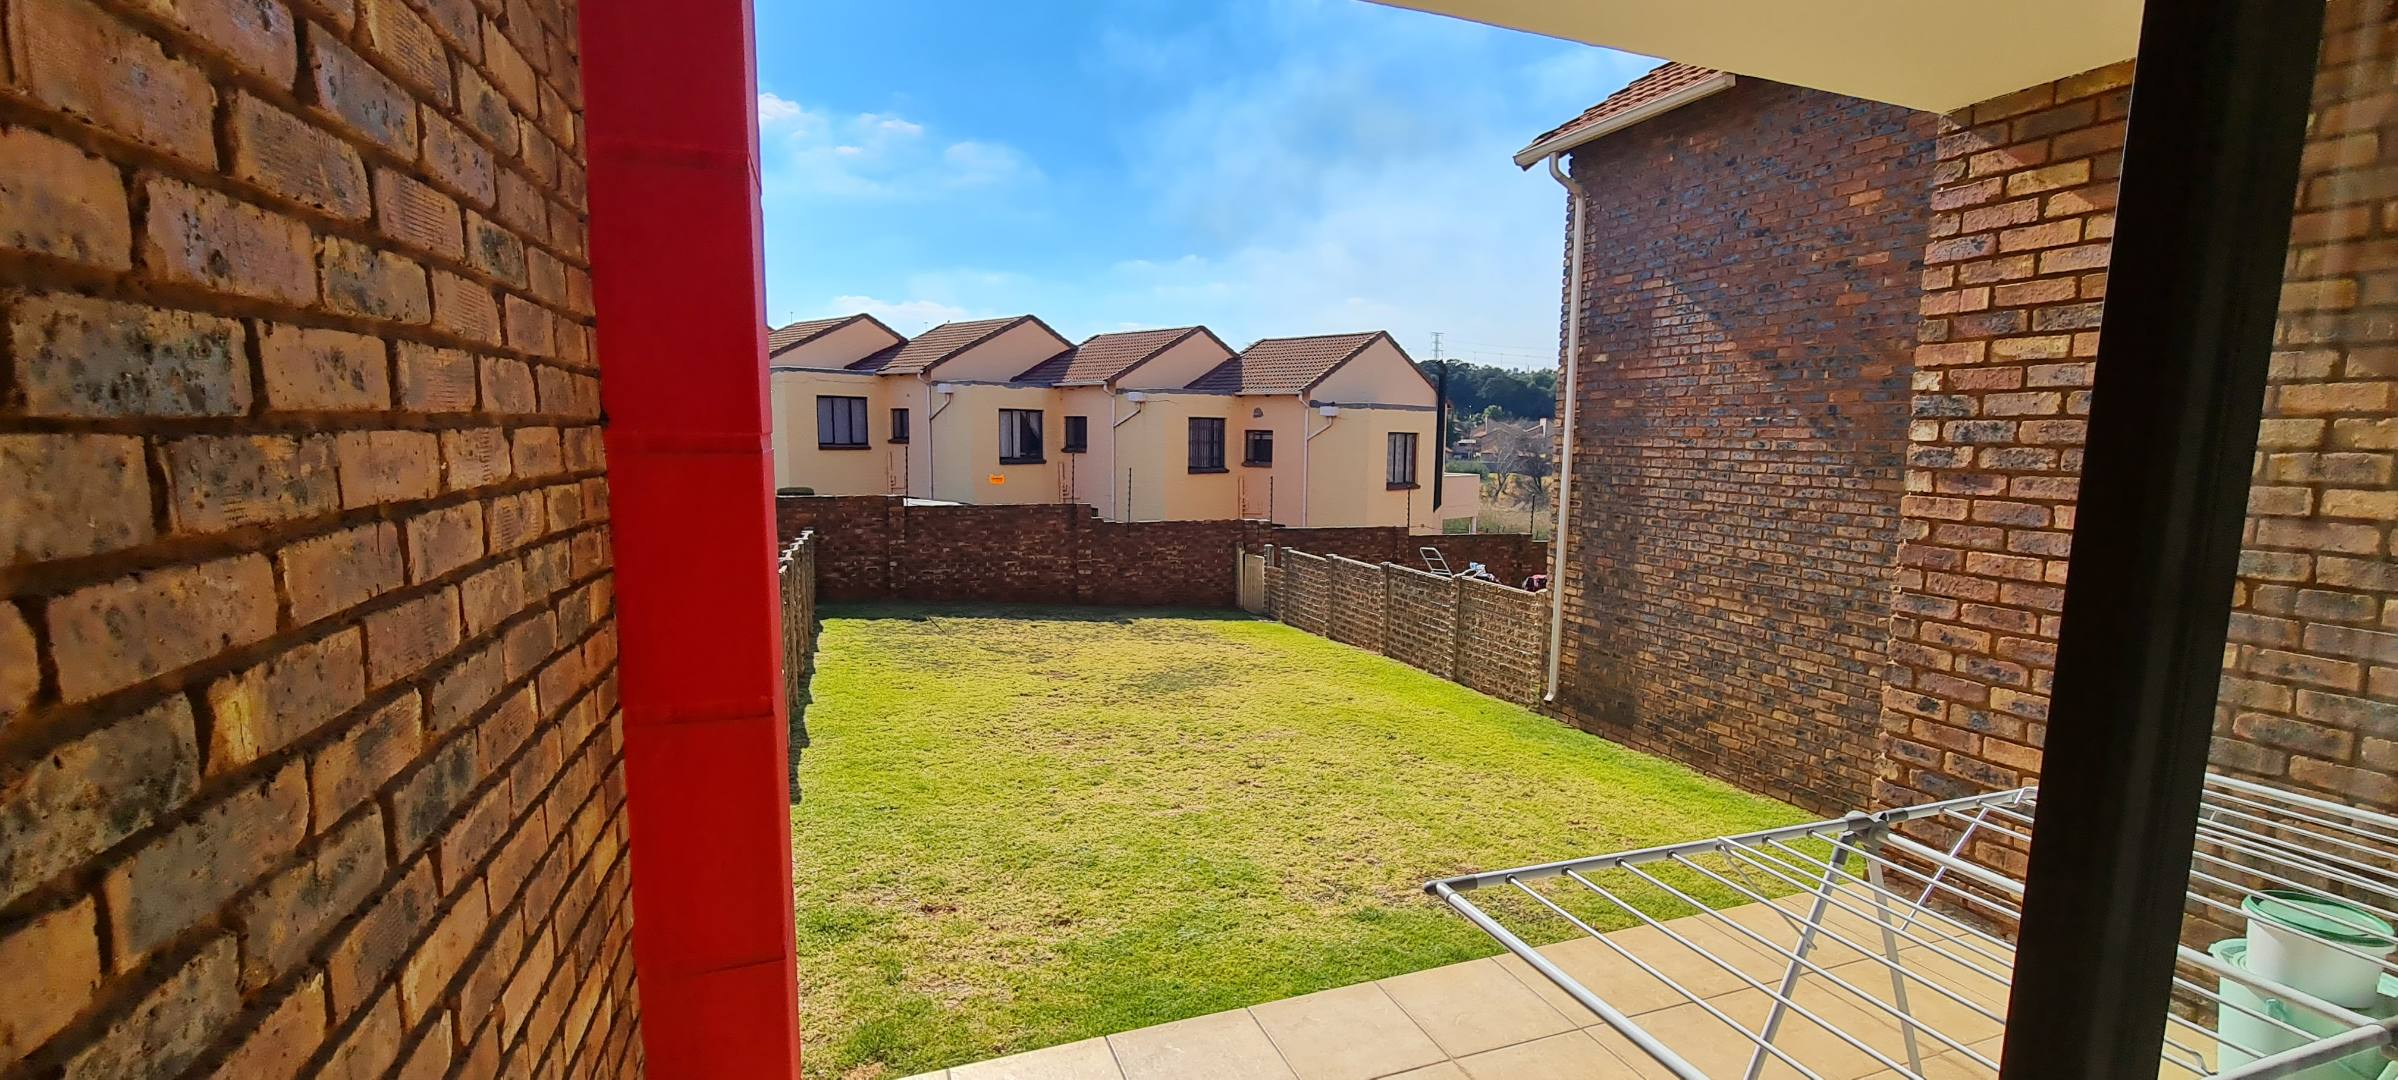 2 Bedroom Apartment / Flat For Sale in Mondeor